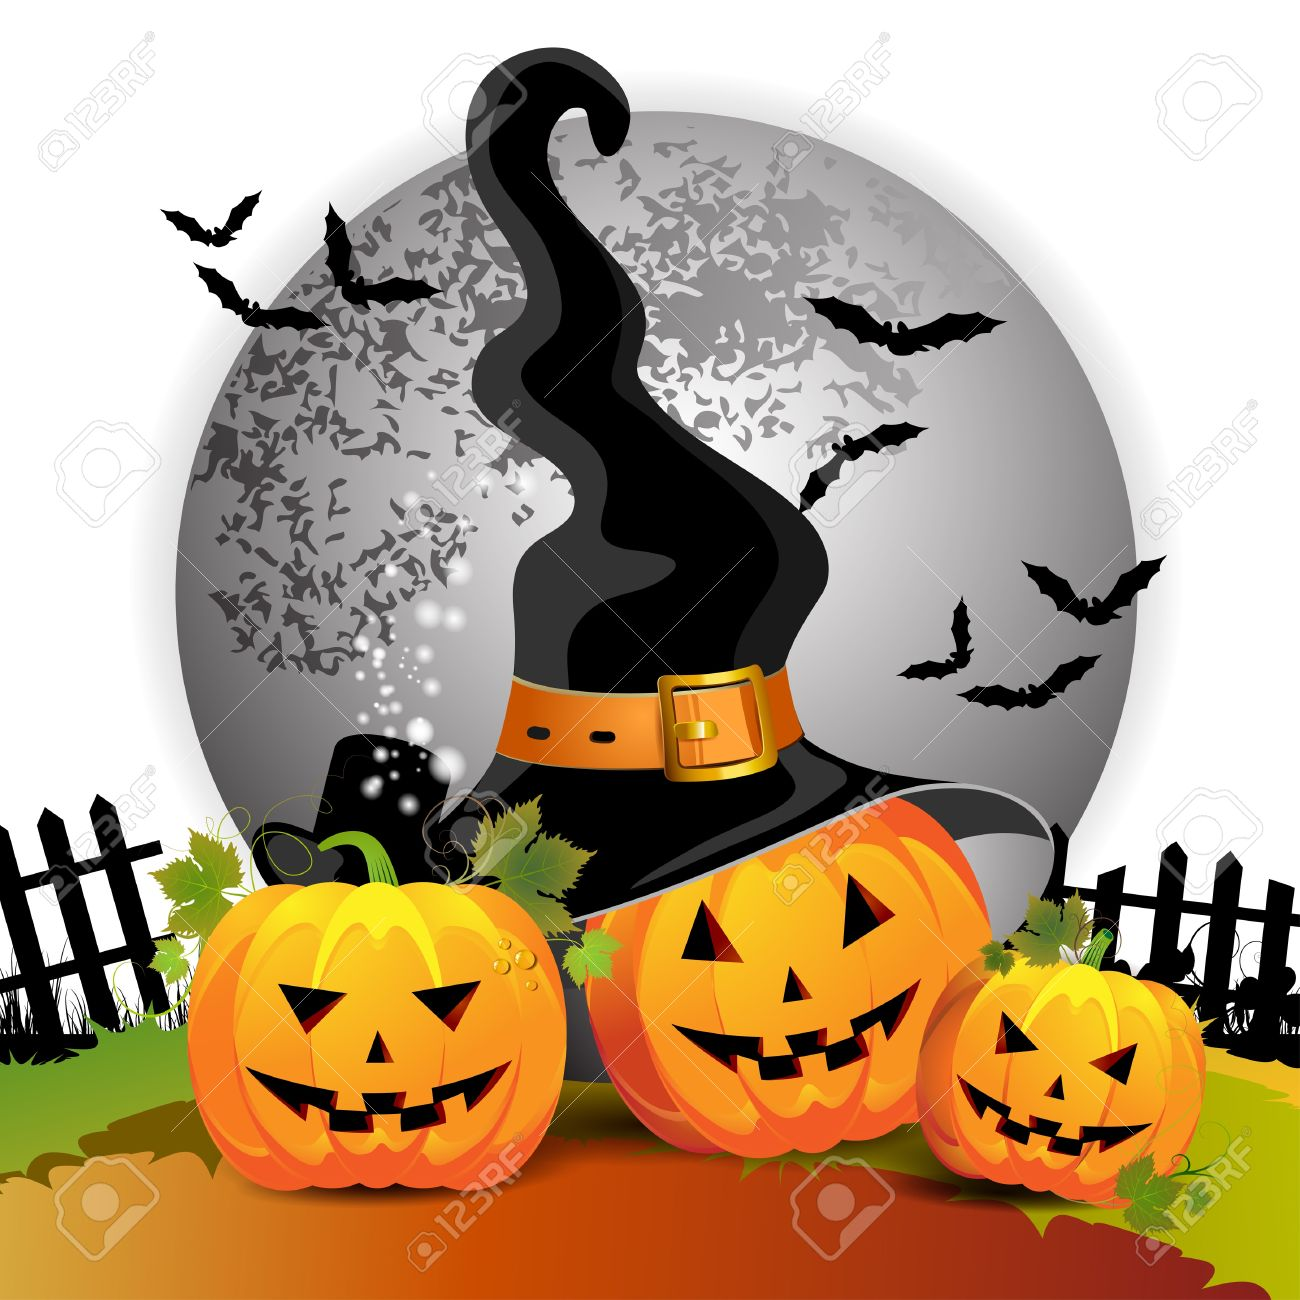 Halloween Pumpkin With Witches Hat Royalty Free Cliparts, Vectors.